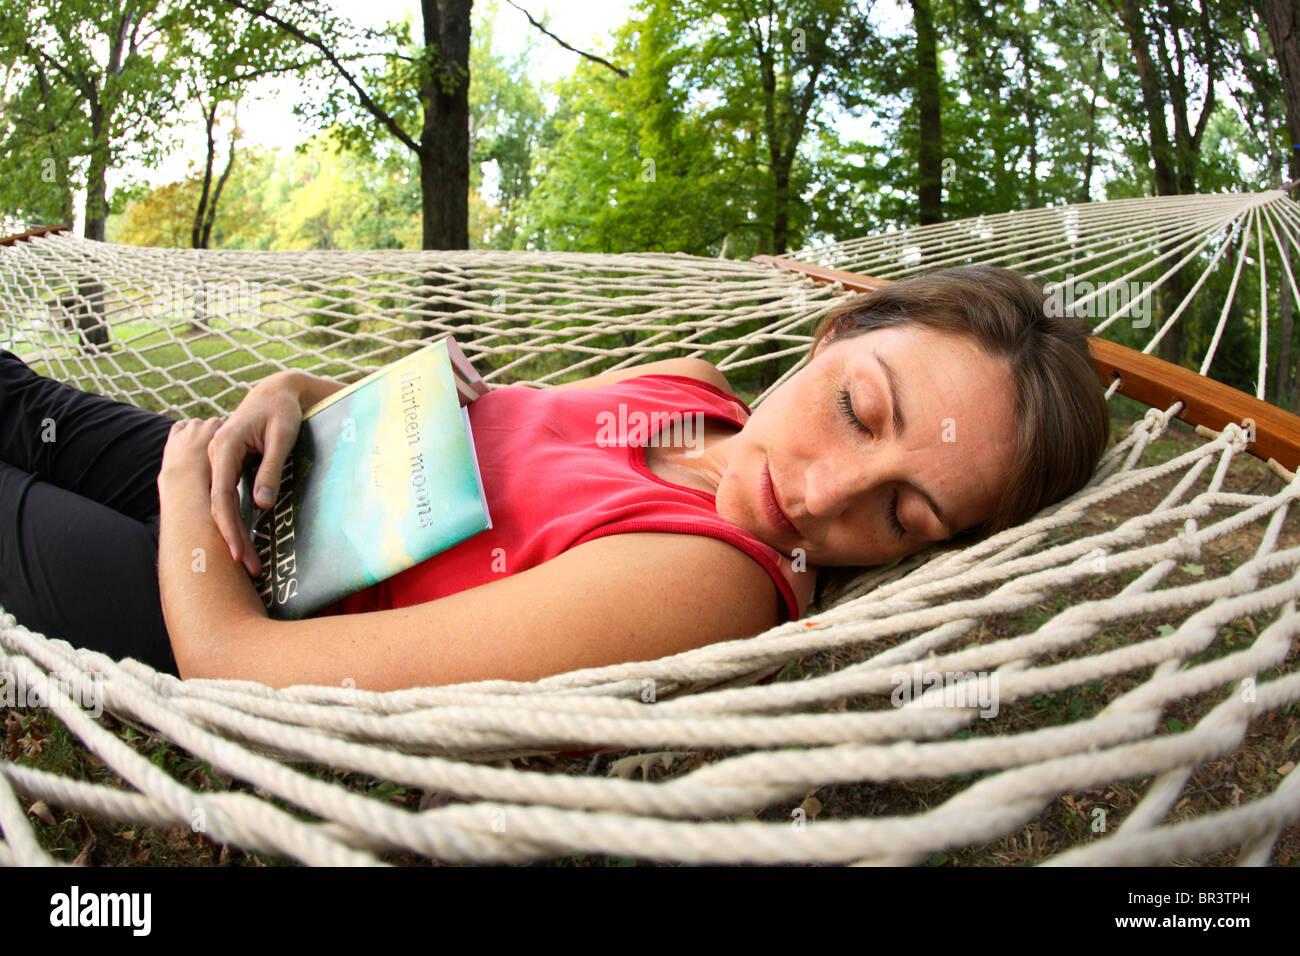 young woman falls asleep while reading a good book in a hammock in